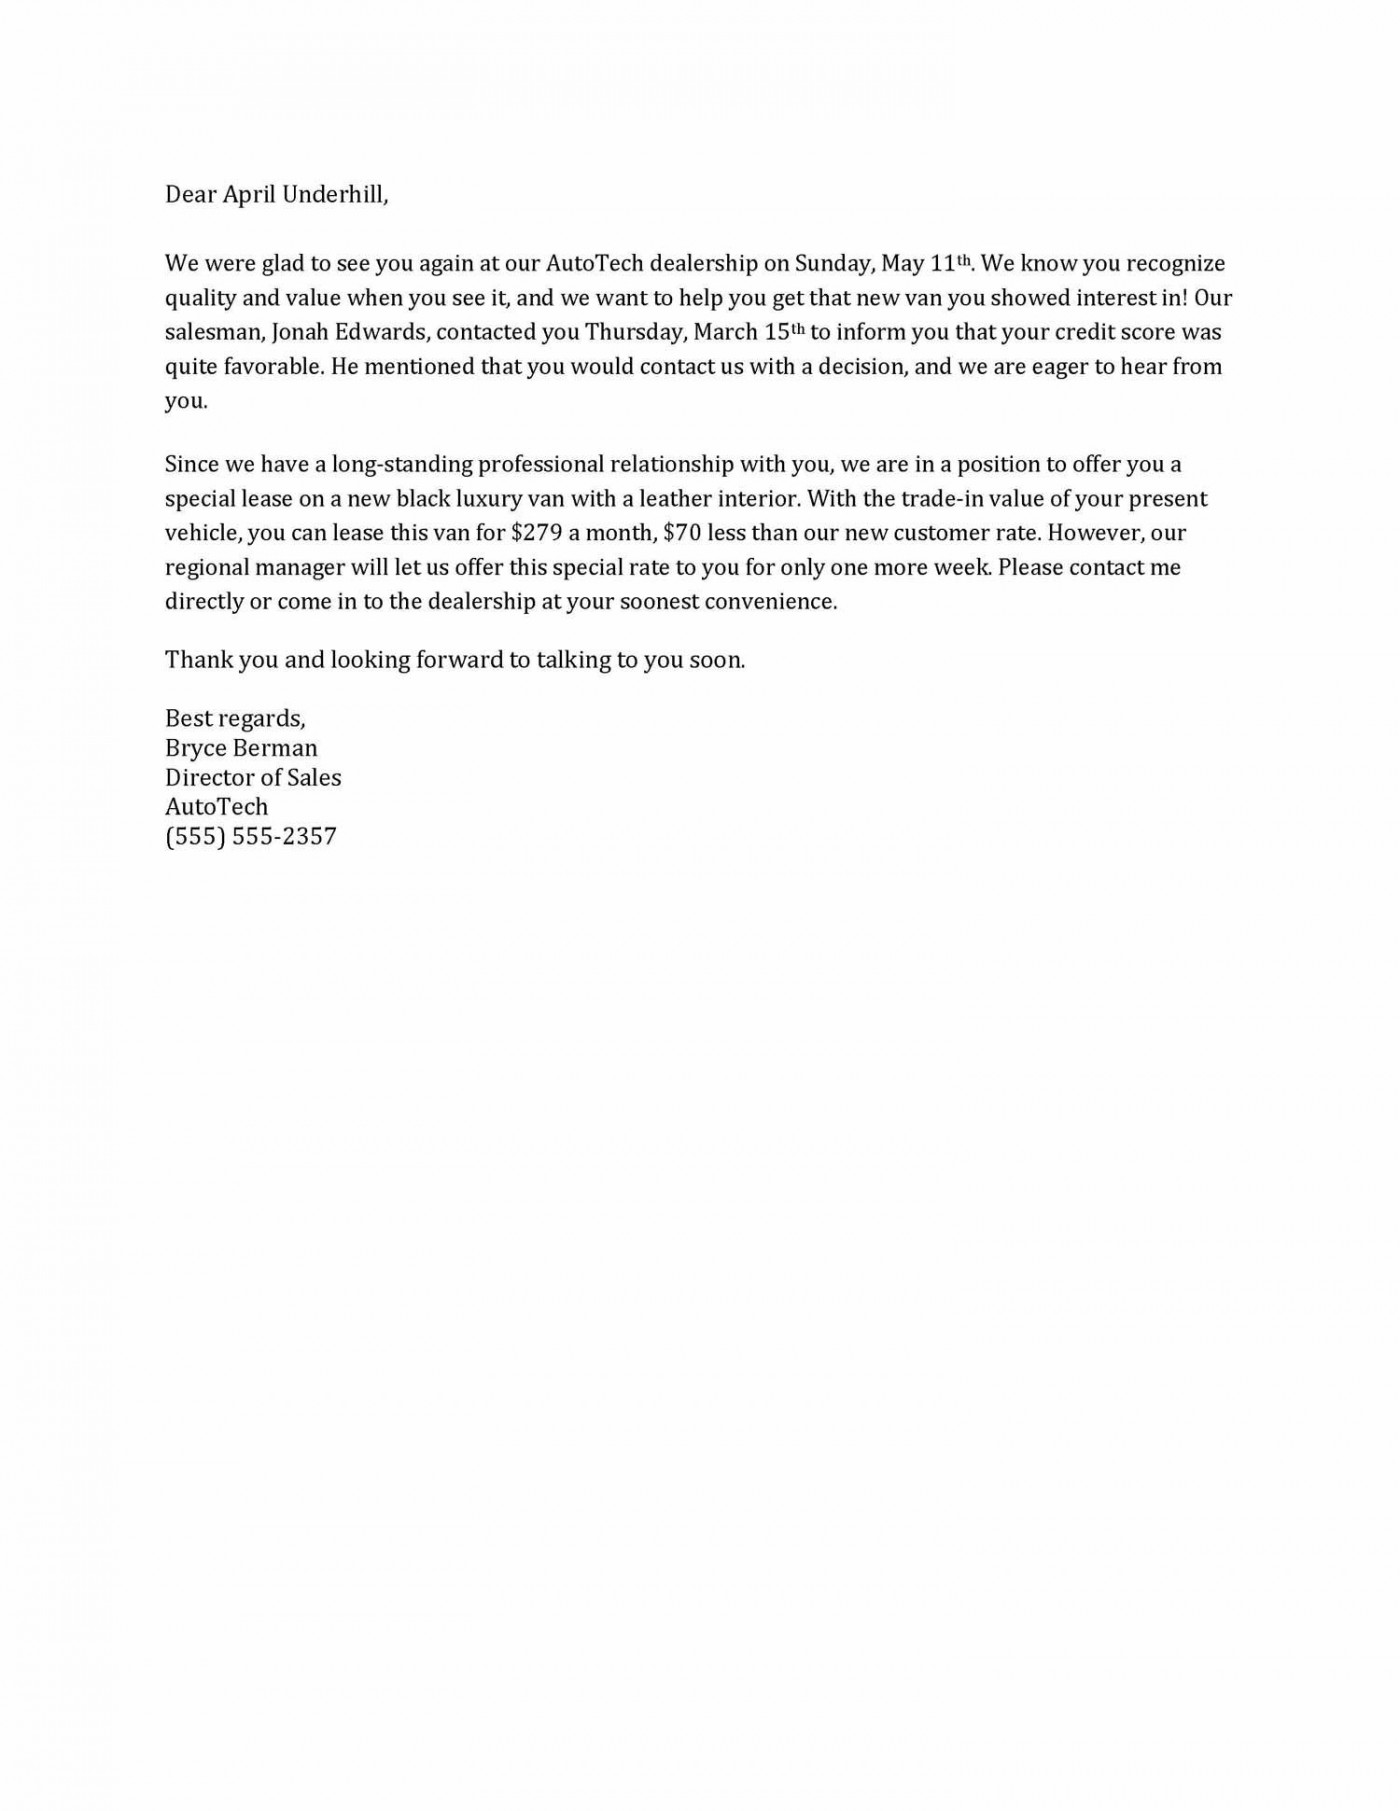 009 Impressive Follow Up Email Template To Client Sample  Simple Letter For Payment After Sending Proposal1400